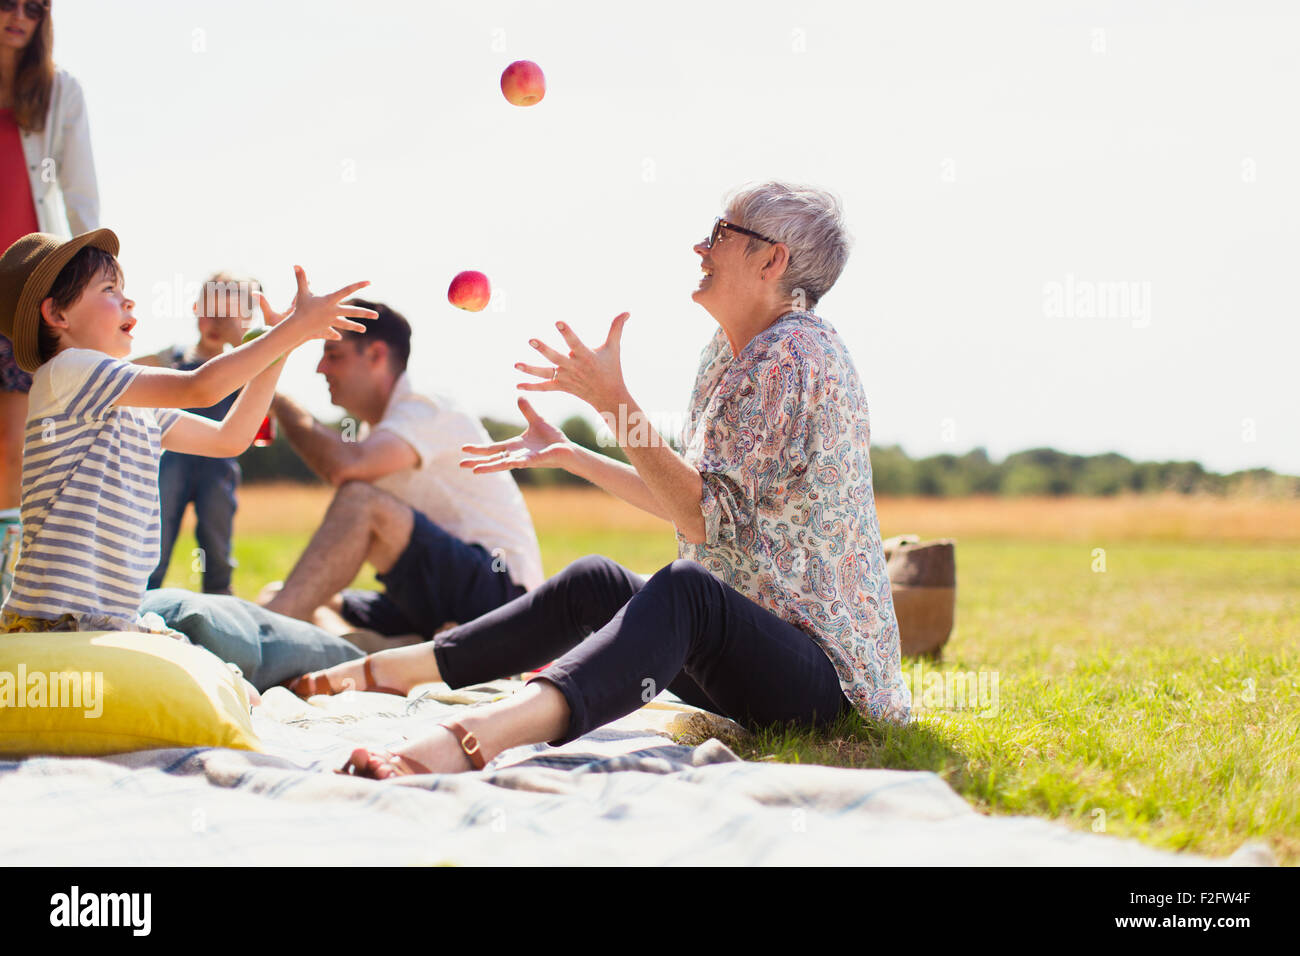 Grandmother and grandson juggling apples on picnic blanket in sunny field - Stock Image